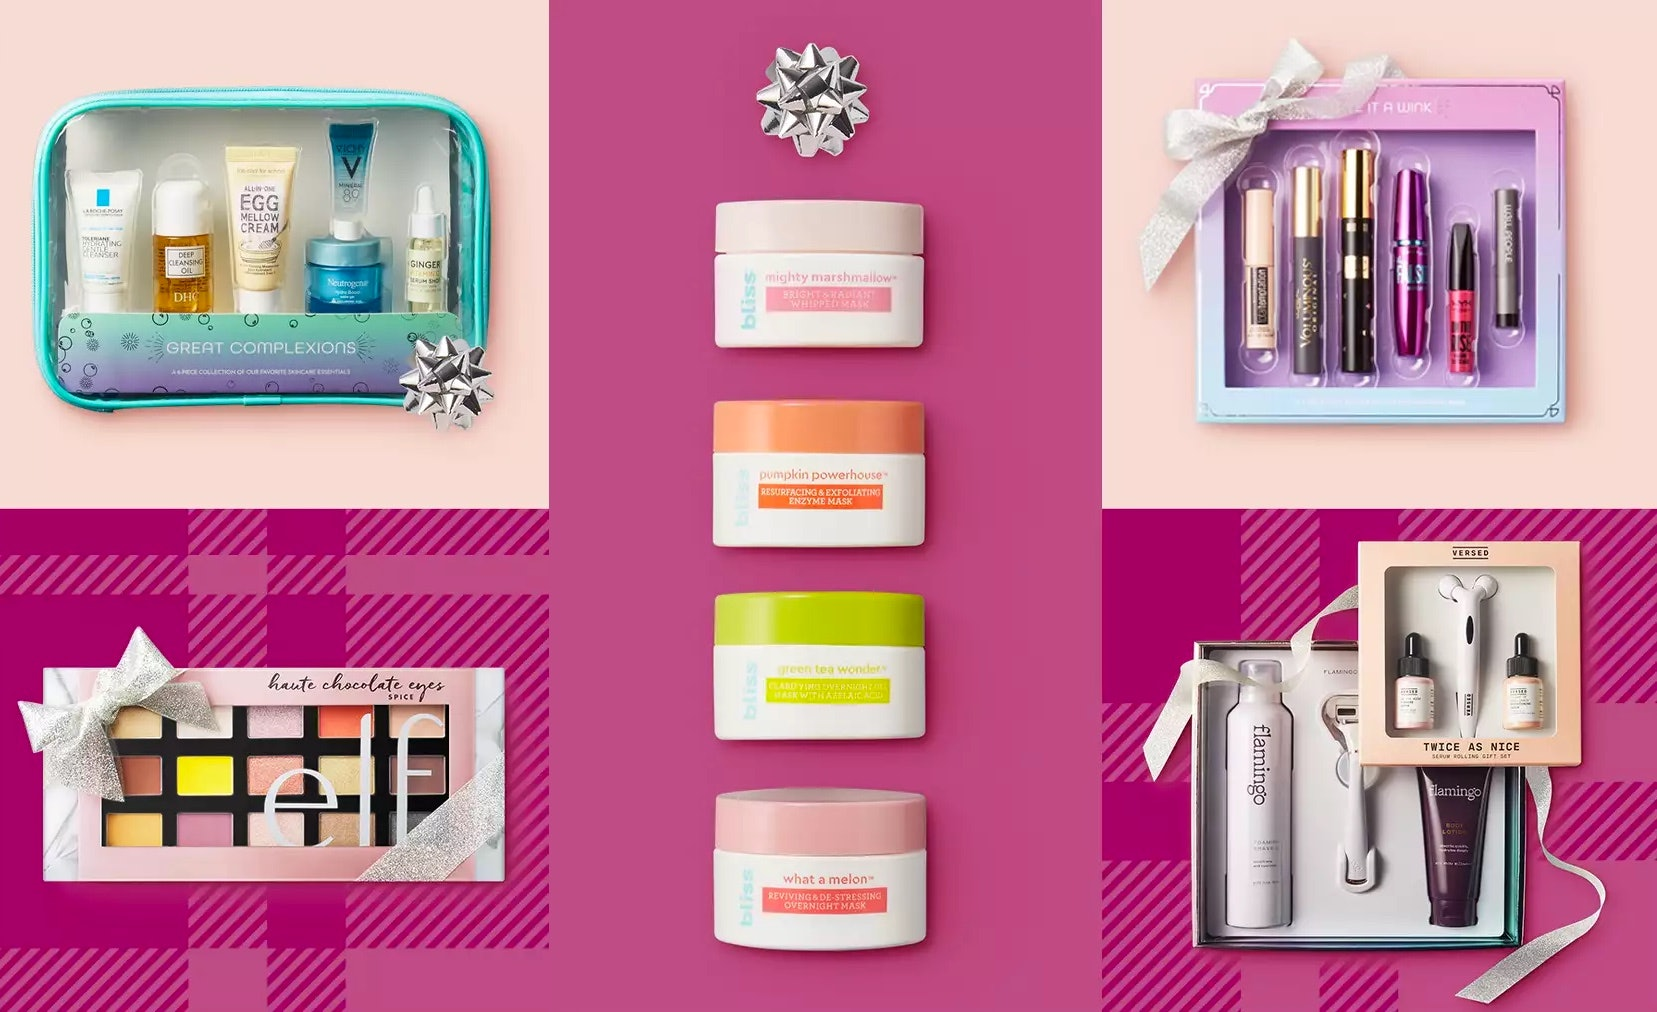 13 Beauty Gifts Under $15 At Target That Are Ready For White Elephant Games, Stocking Stuffers, & Beyond